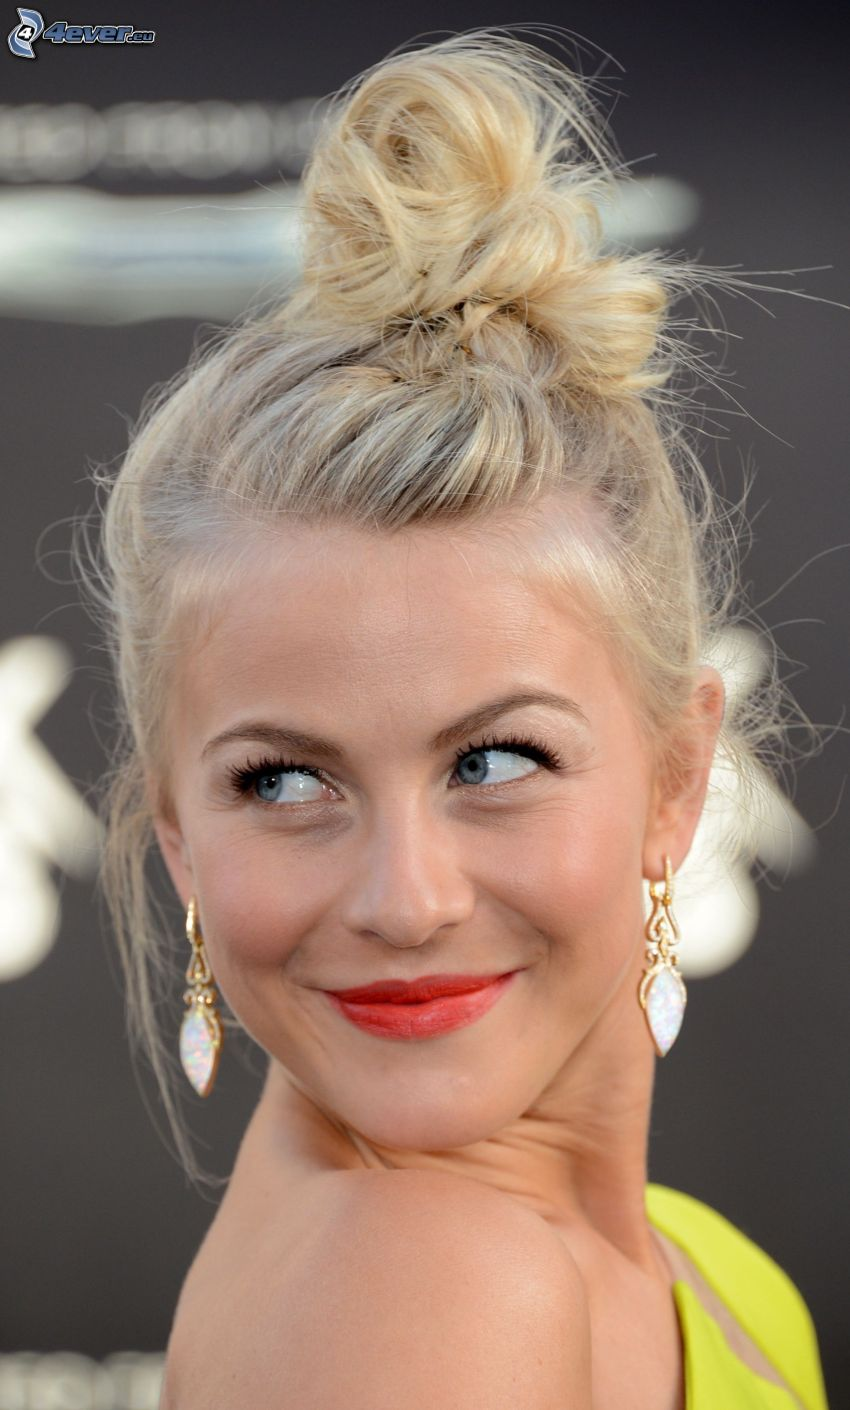 Julianne Hough, mirada